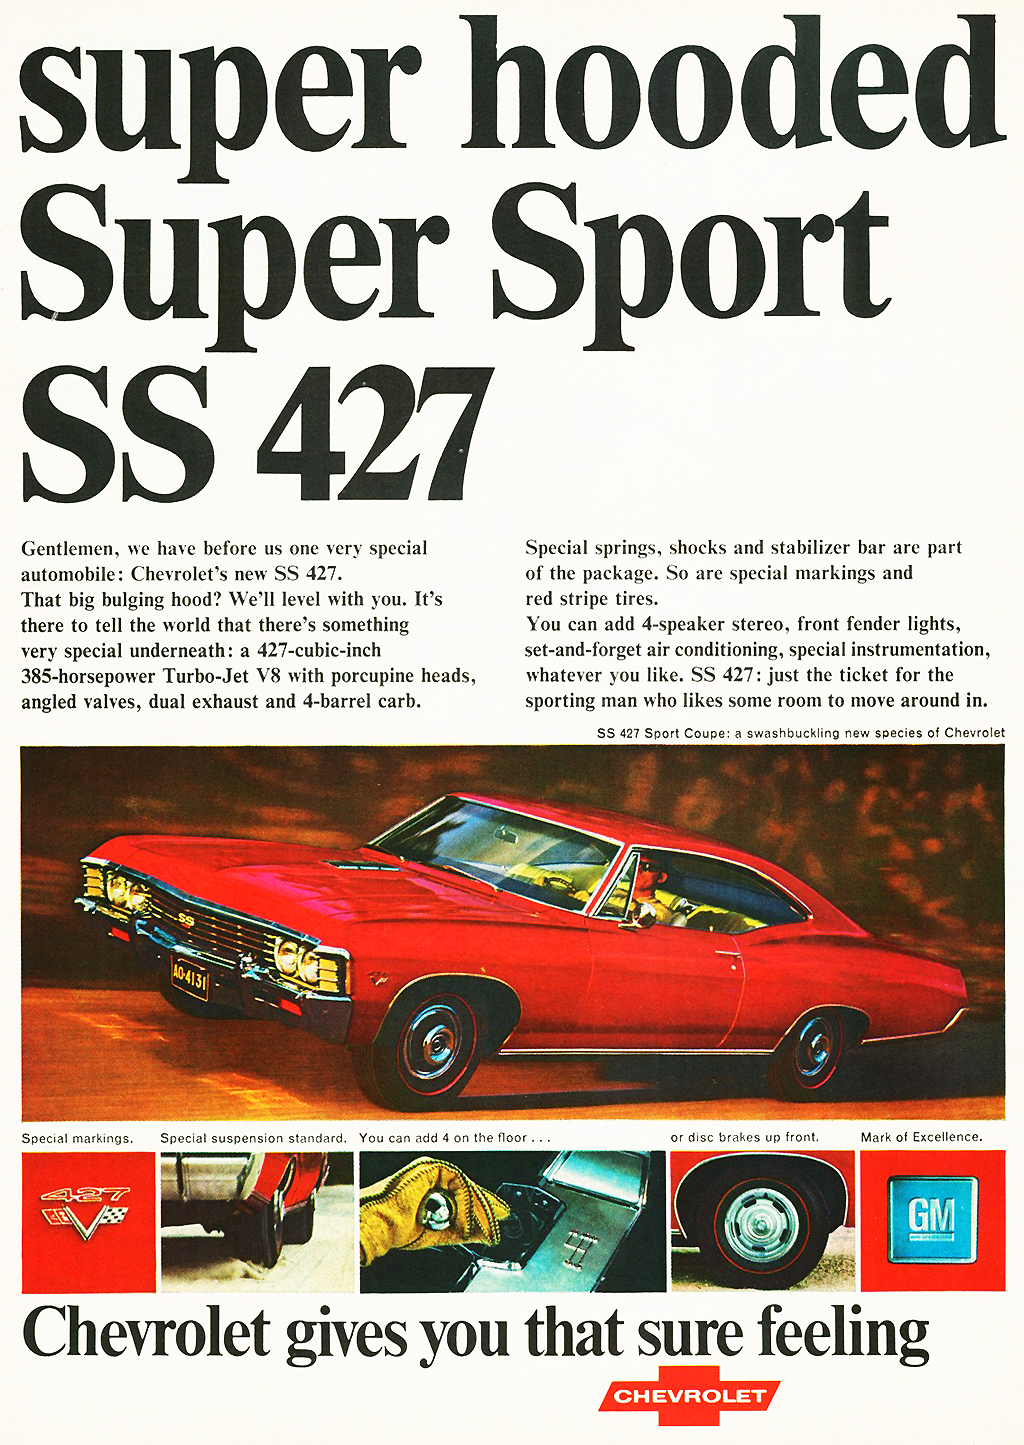 Renault 1984 Encore Ad A1 likewise 1984 Mercedes 190 Factory Picture Front Right moreover Gallery in addition Gallery together with 1967 Chevrolet Ss 427 Sport Coupe Ad. on vintage car ads